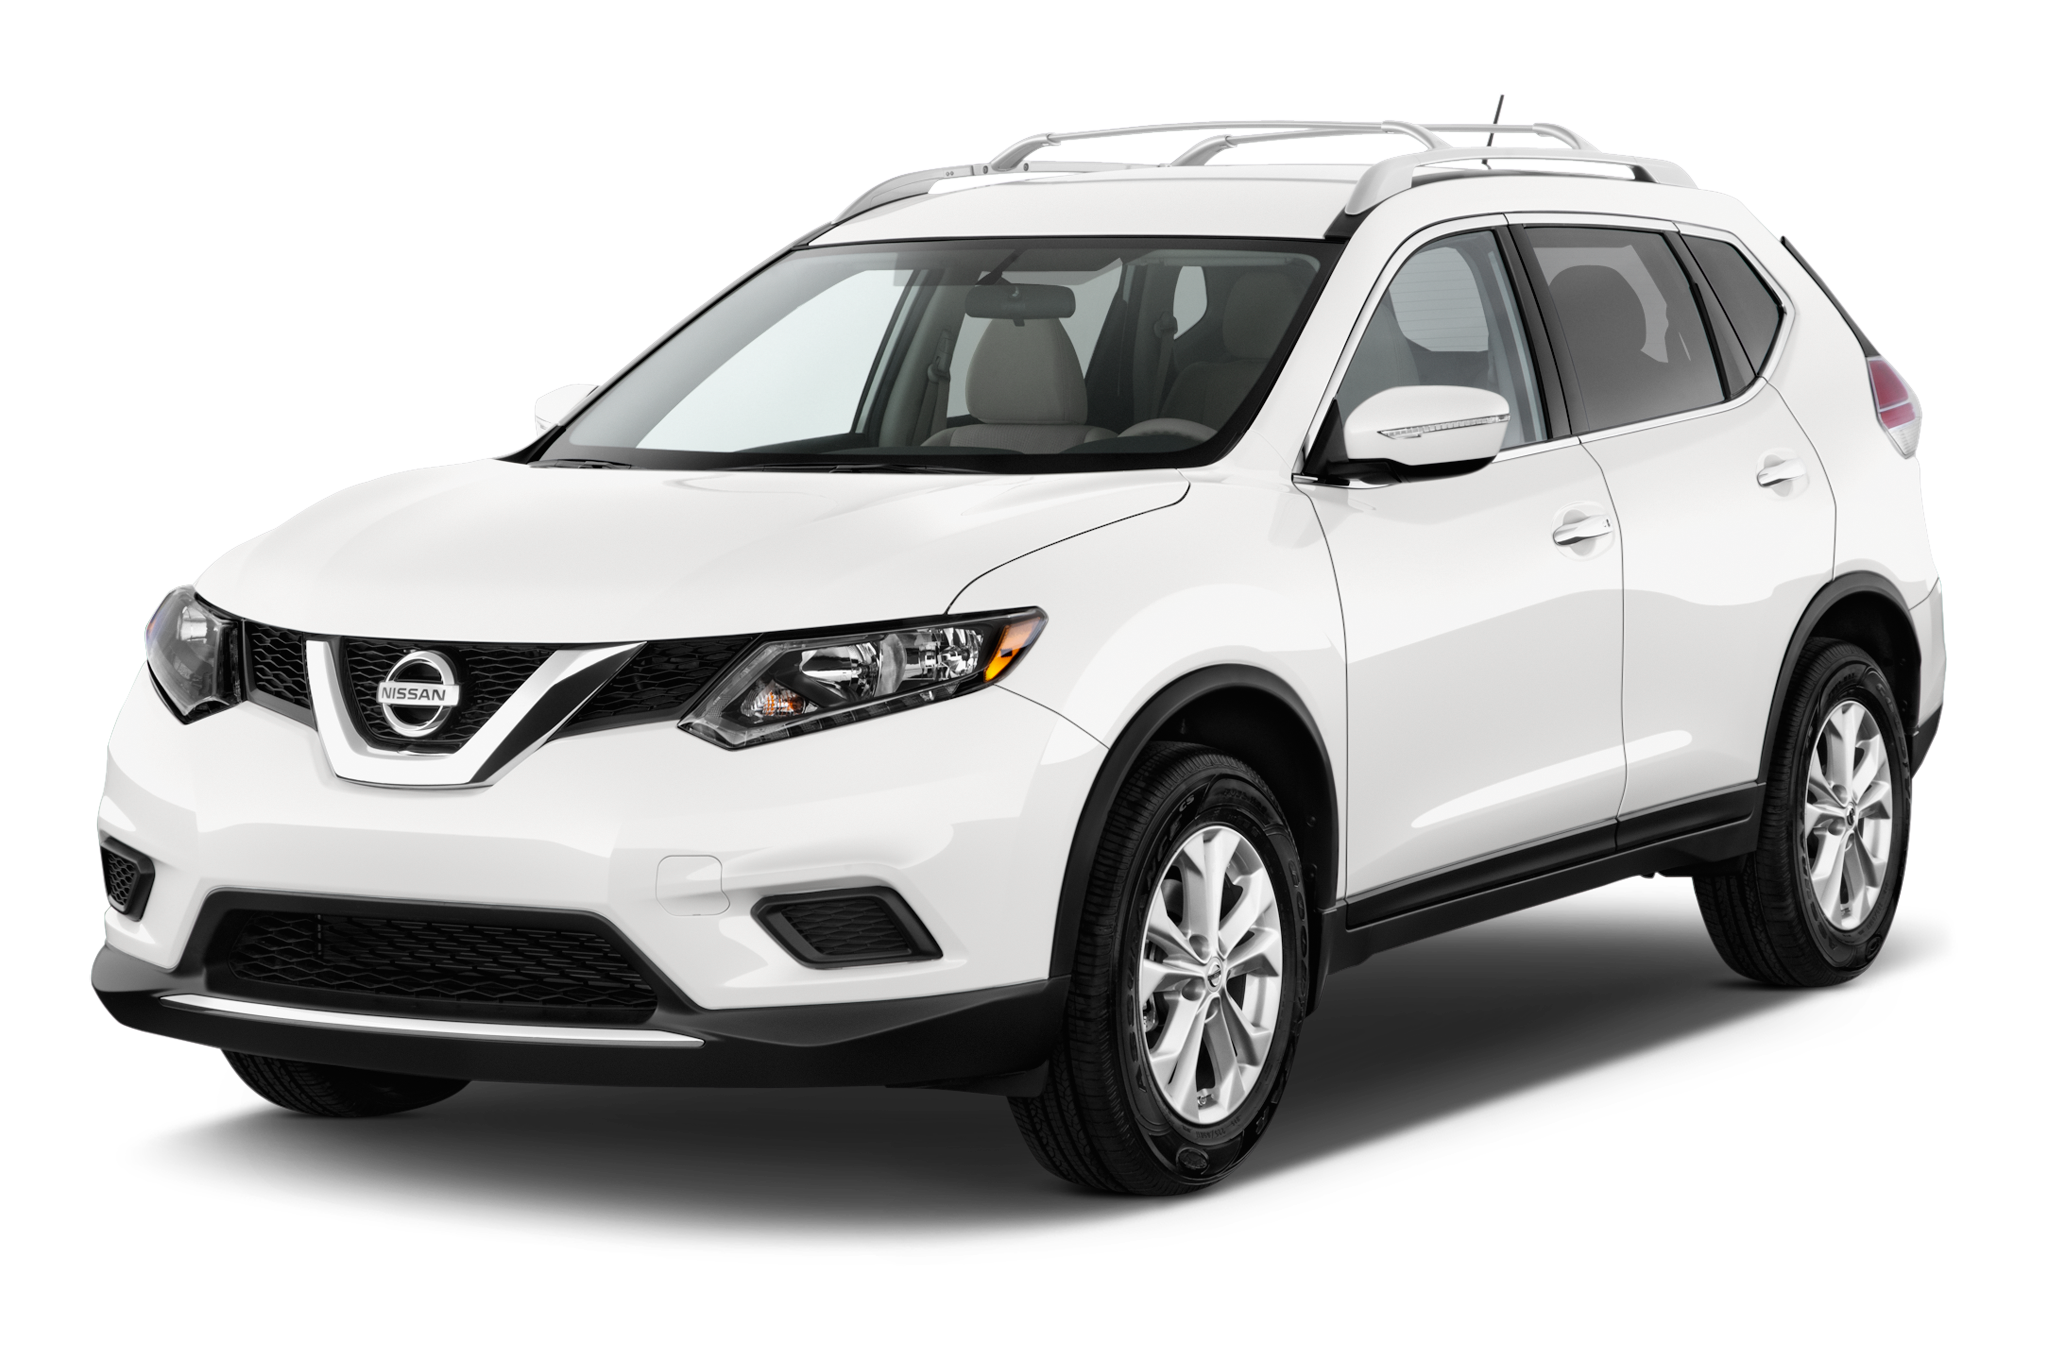 Nissan rogue clipart clipart black and white library 2019 Nissan Rogue - Emporium Auto Lease clipart black and white library